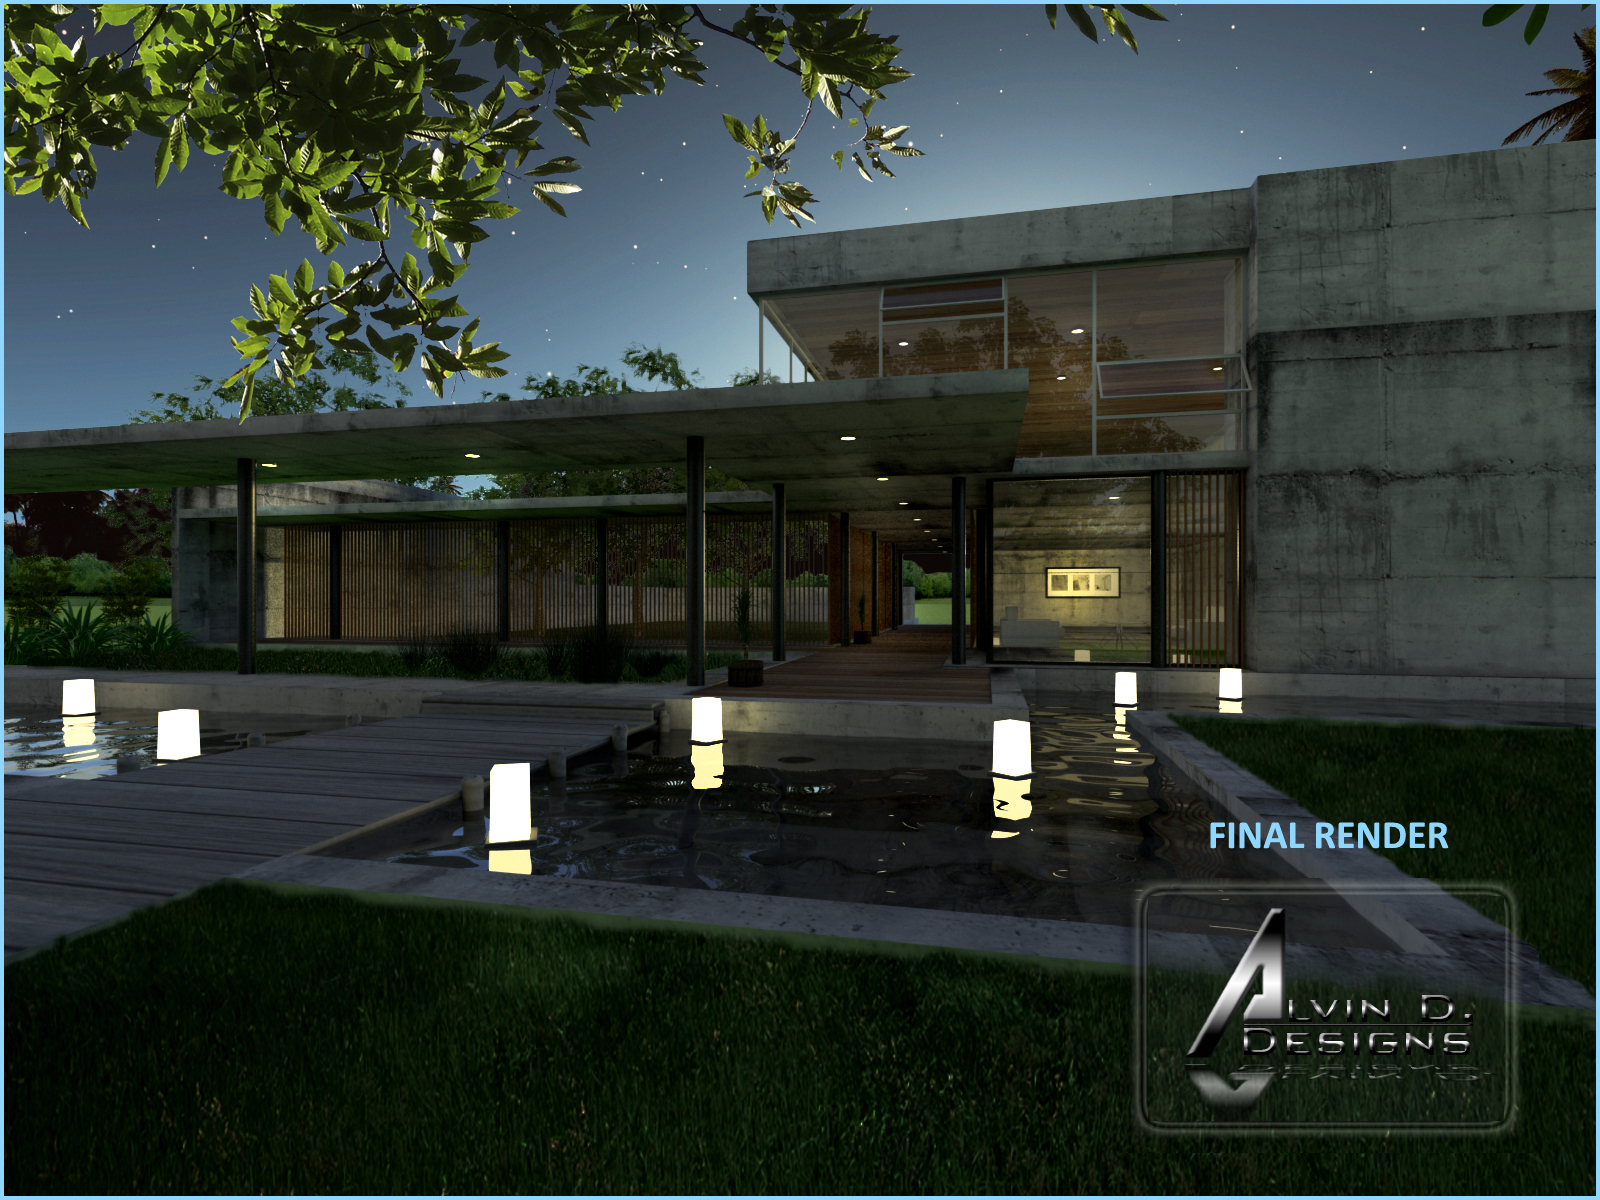 Sketchup texture tutorial vray for sketchup night scene 3 for Setting render vray sketchup exterior